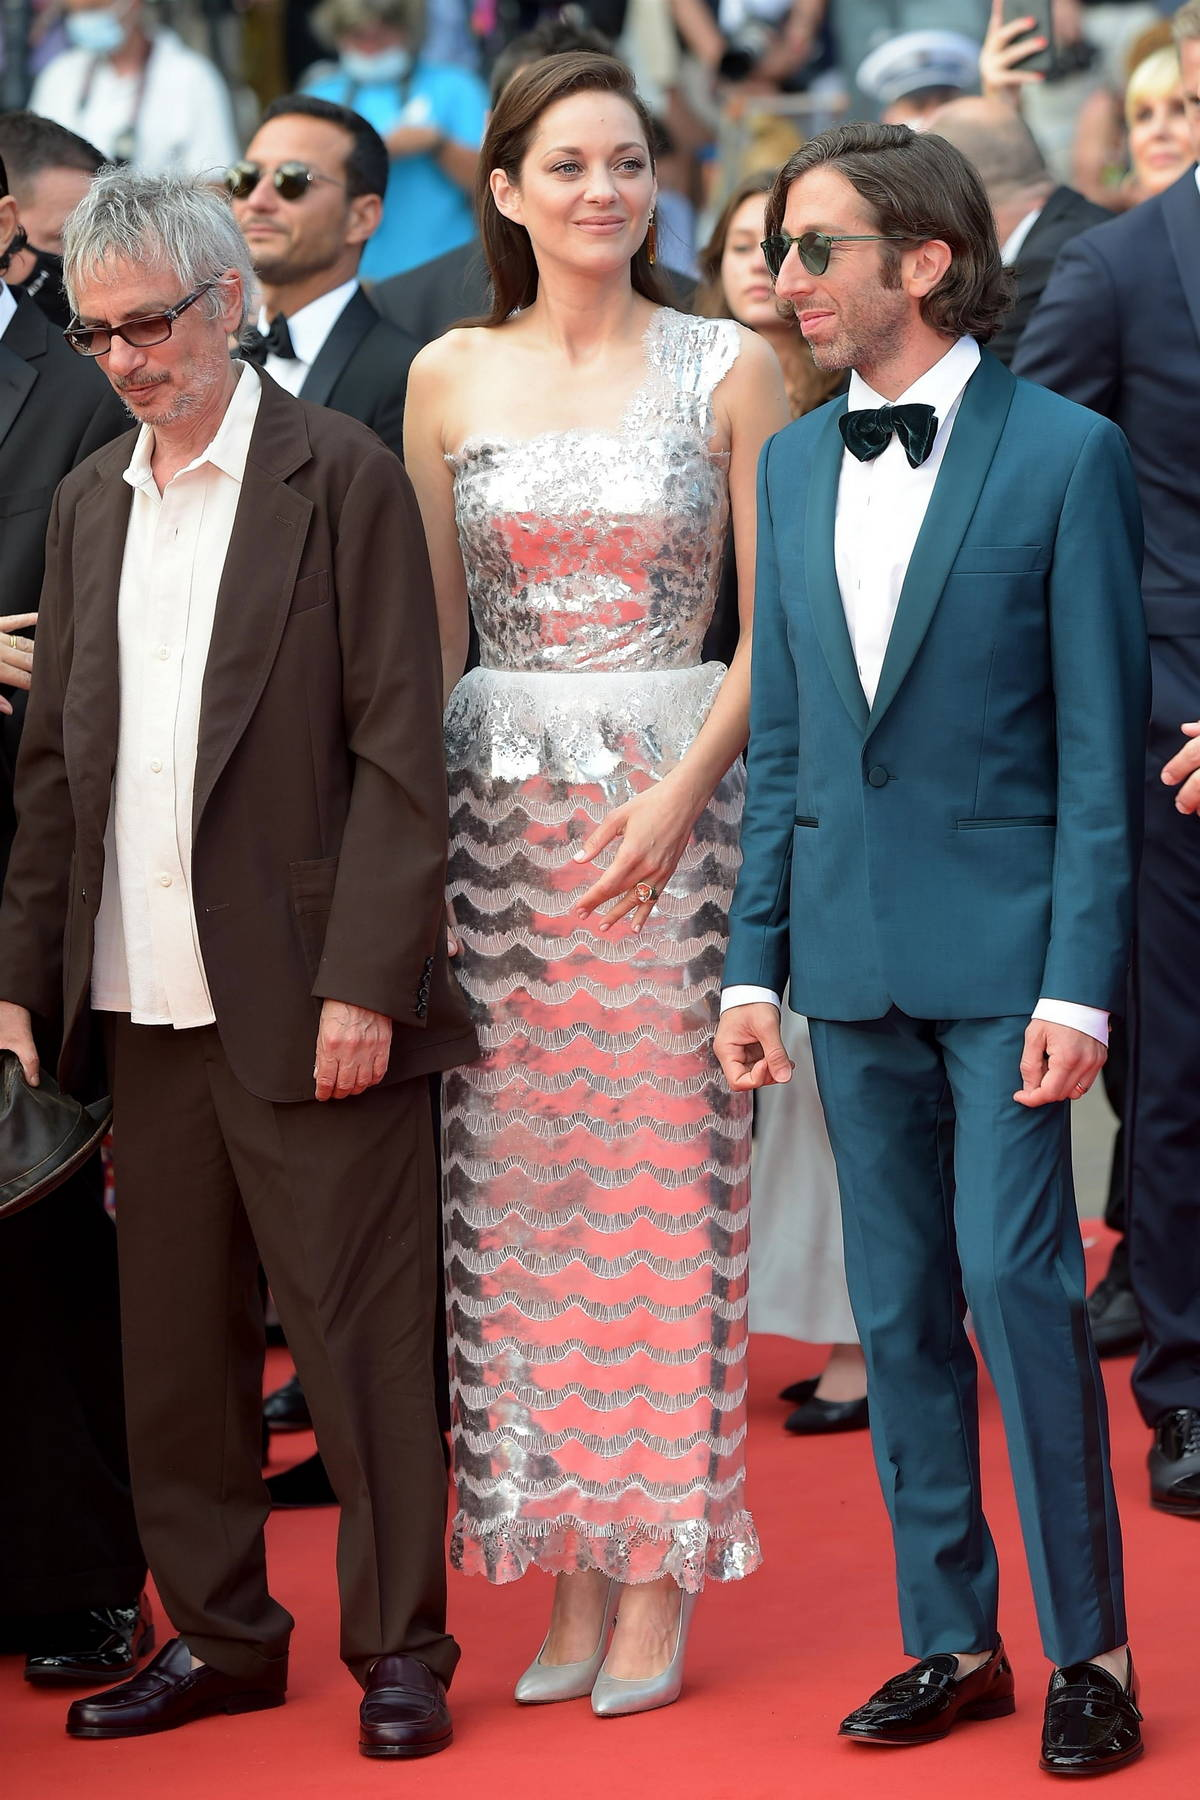 Marion Cotillard attends the 'Annette' screening and opening ceremony during the 74th annual Cannes Film Festival in Cannes, France